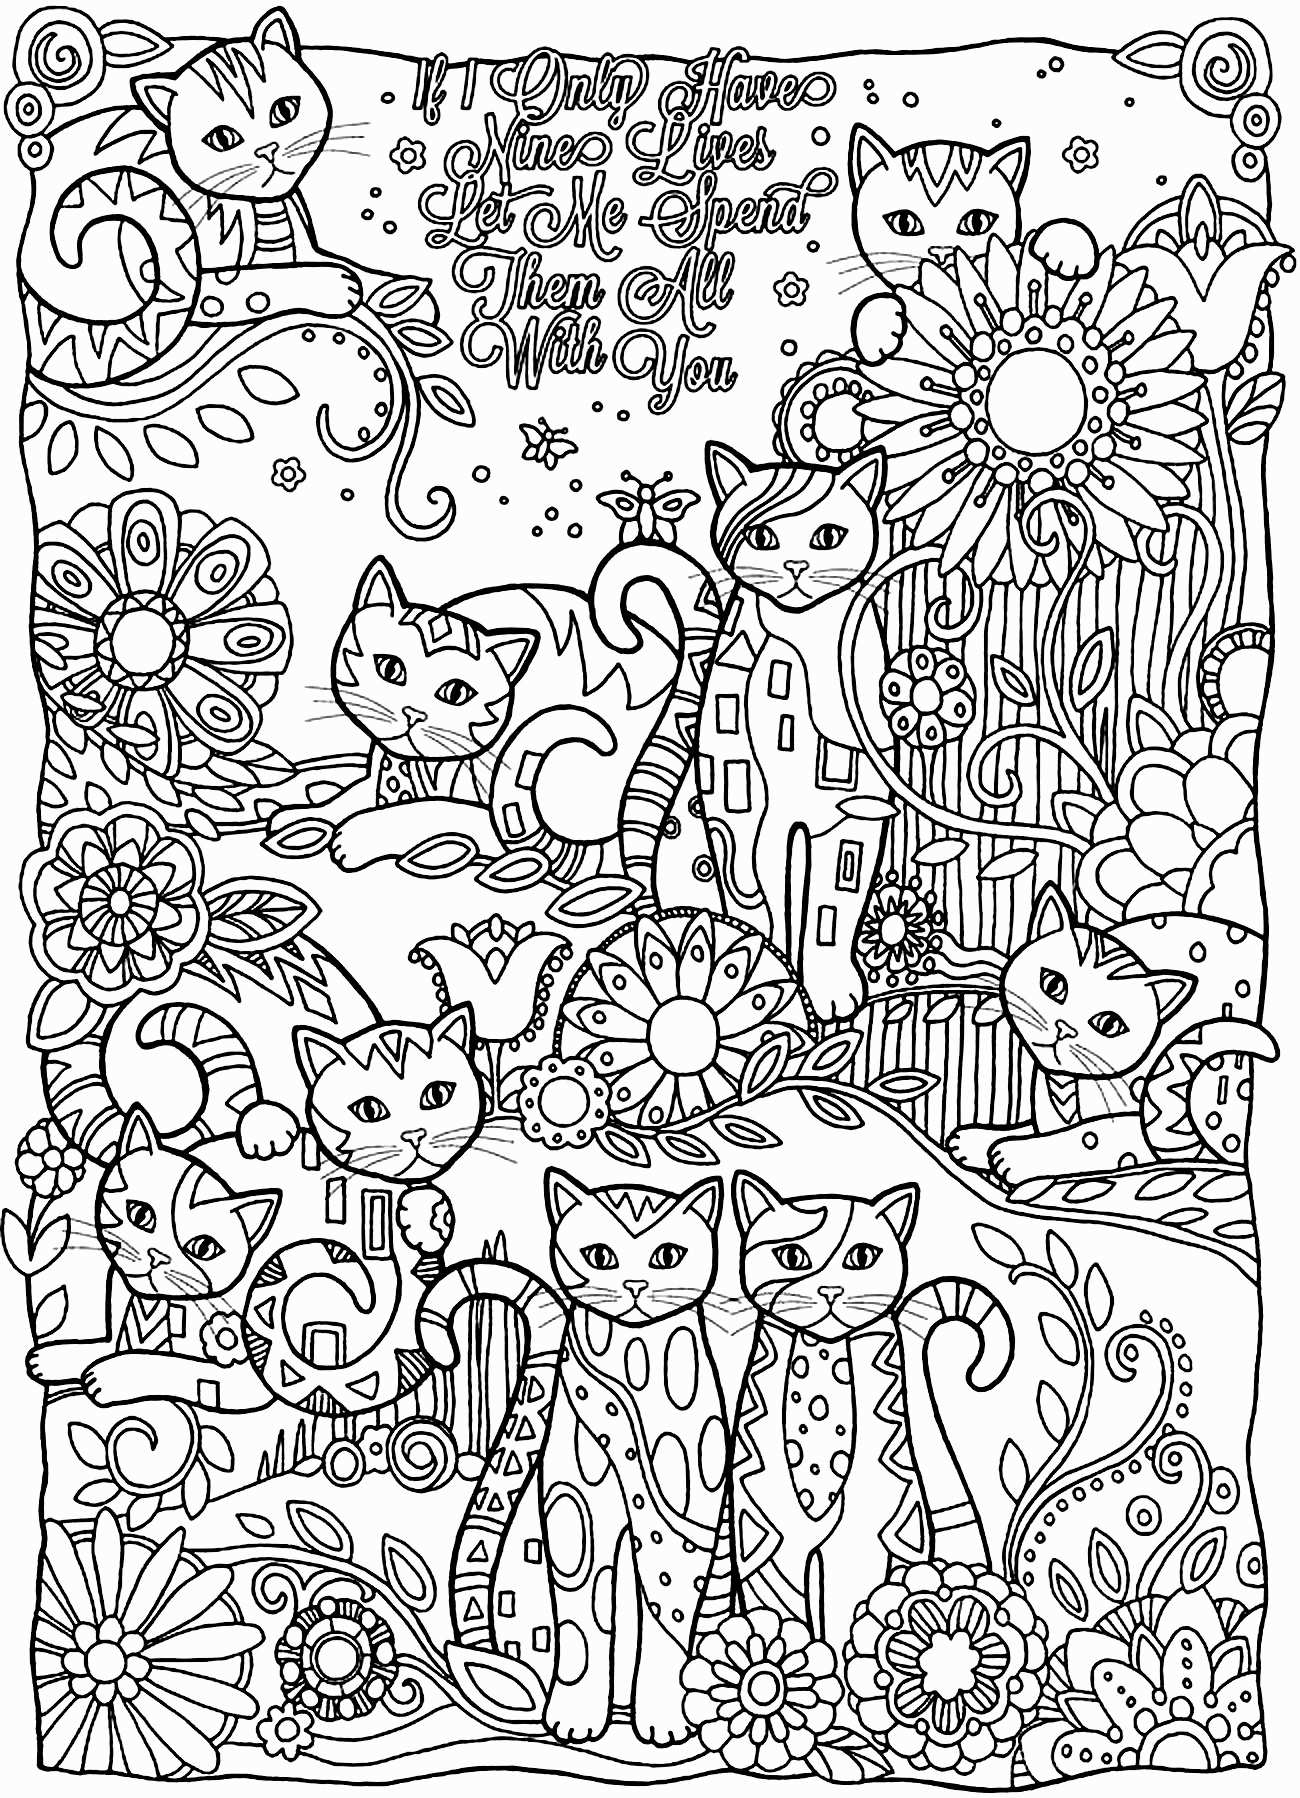 Food Chain Coloring Pages  Gallery 5d - Save it to your computer